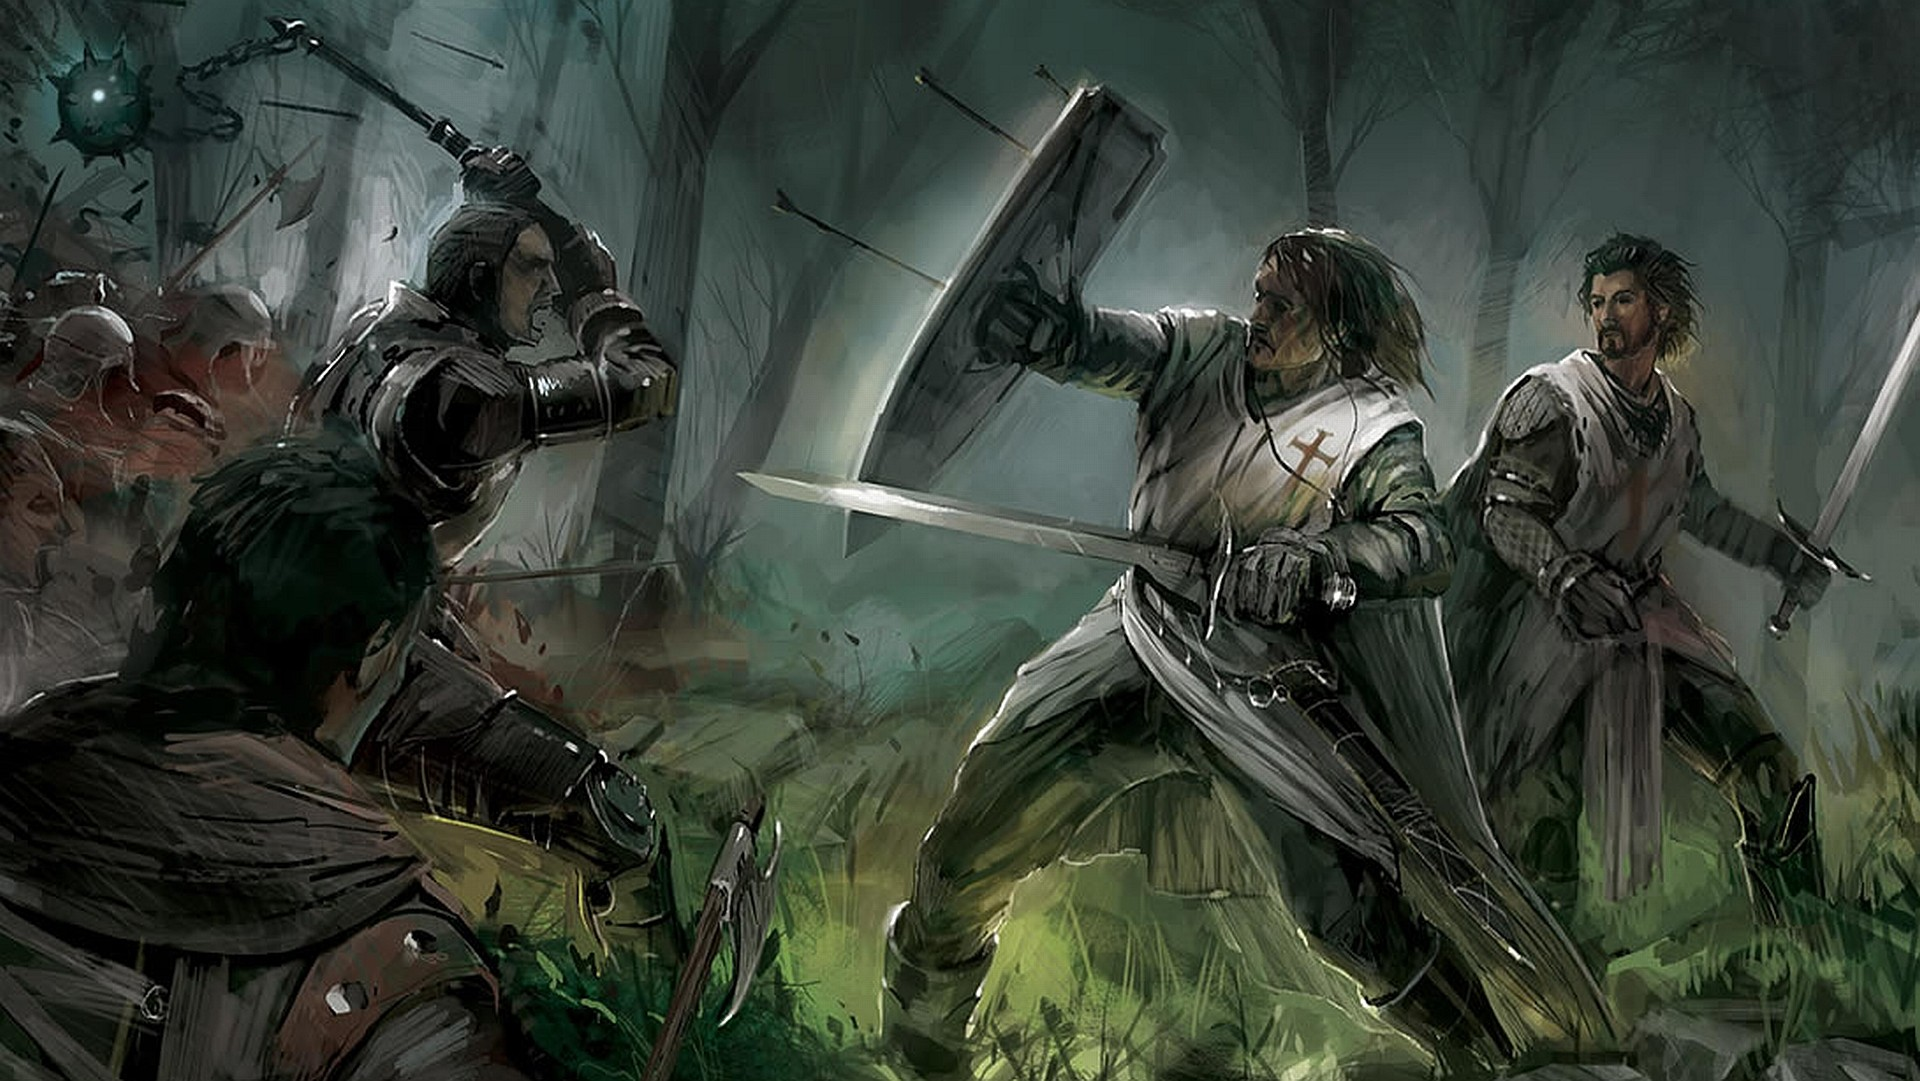 Pin Fight Wallpaper 1920x1081 Knights Templars Warriors Medieval on 1920x1081